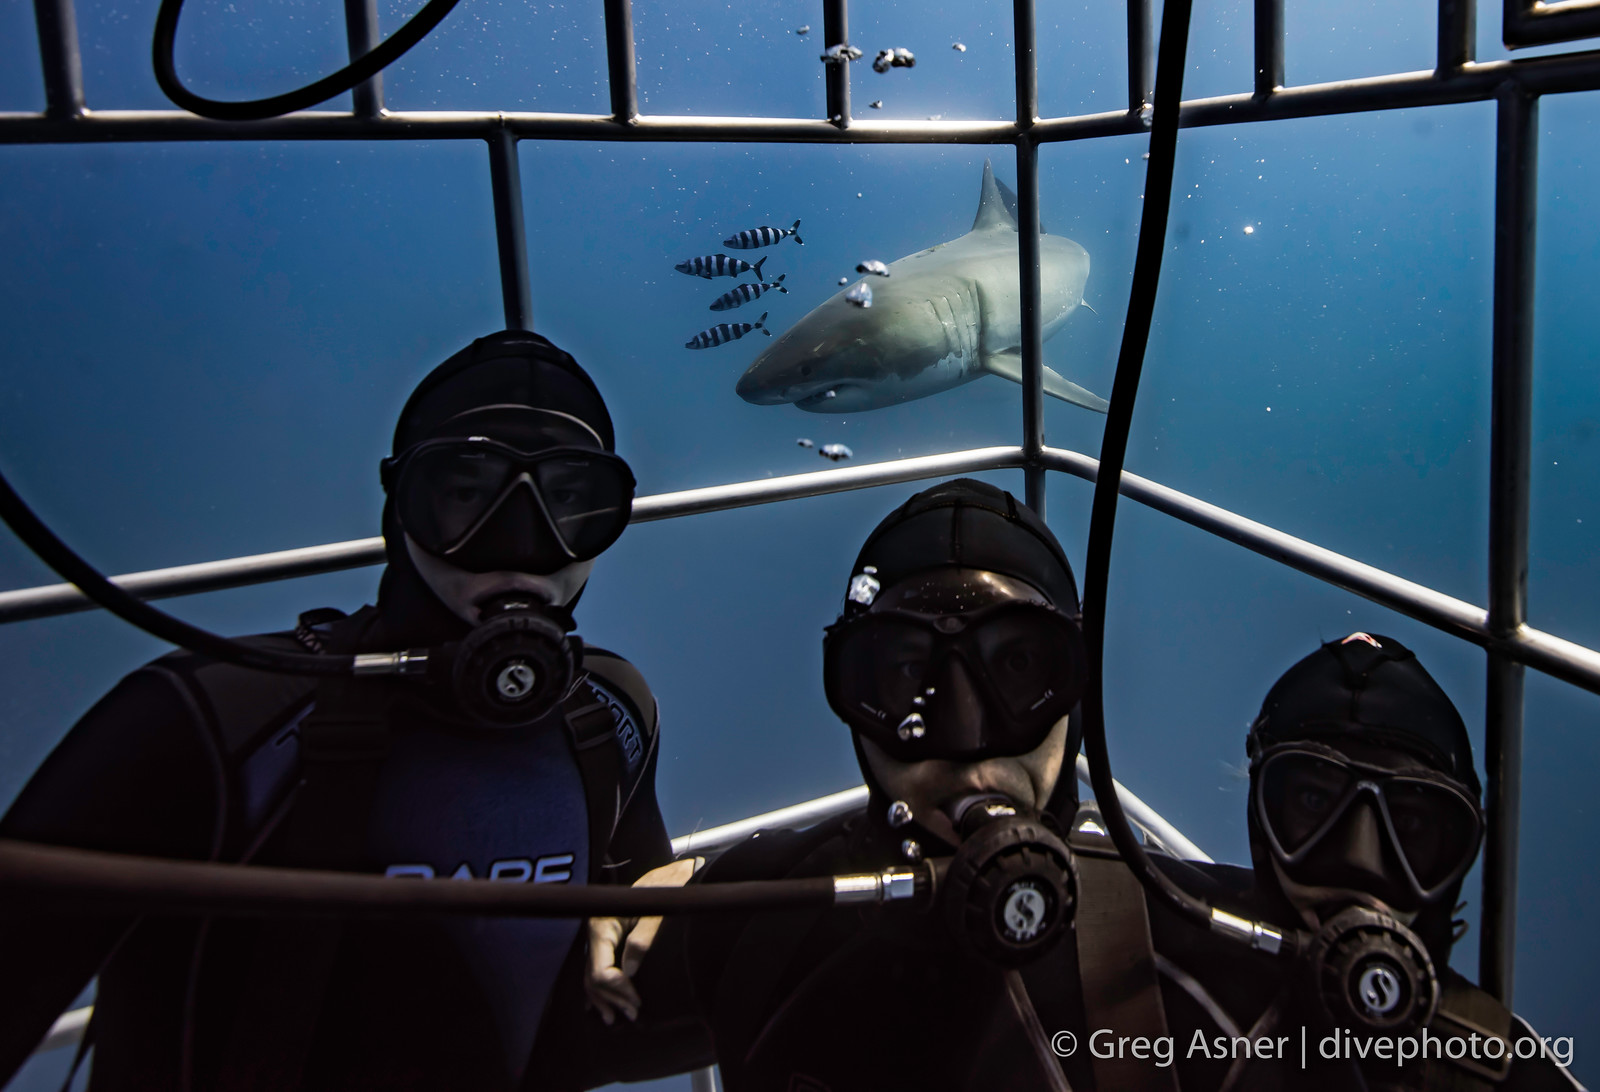 Diving with great white sharks